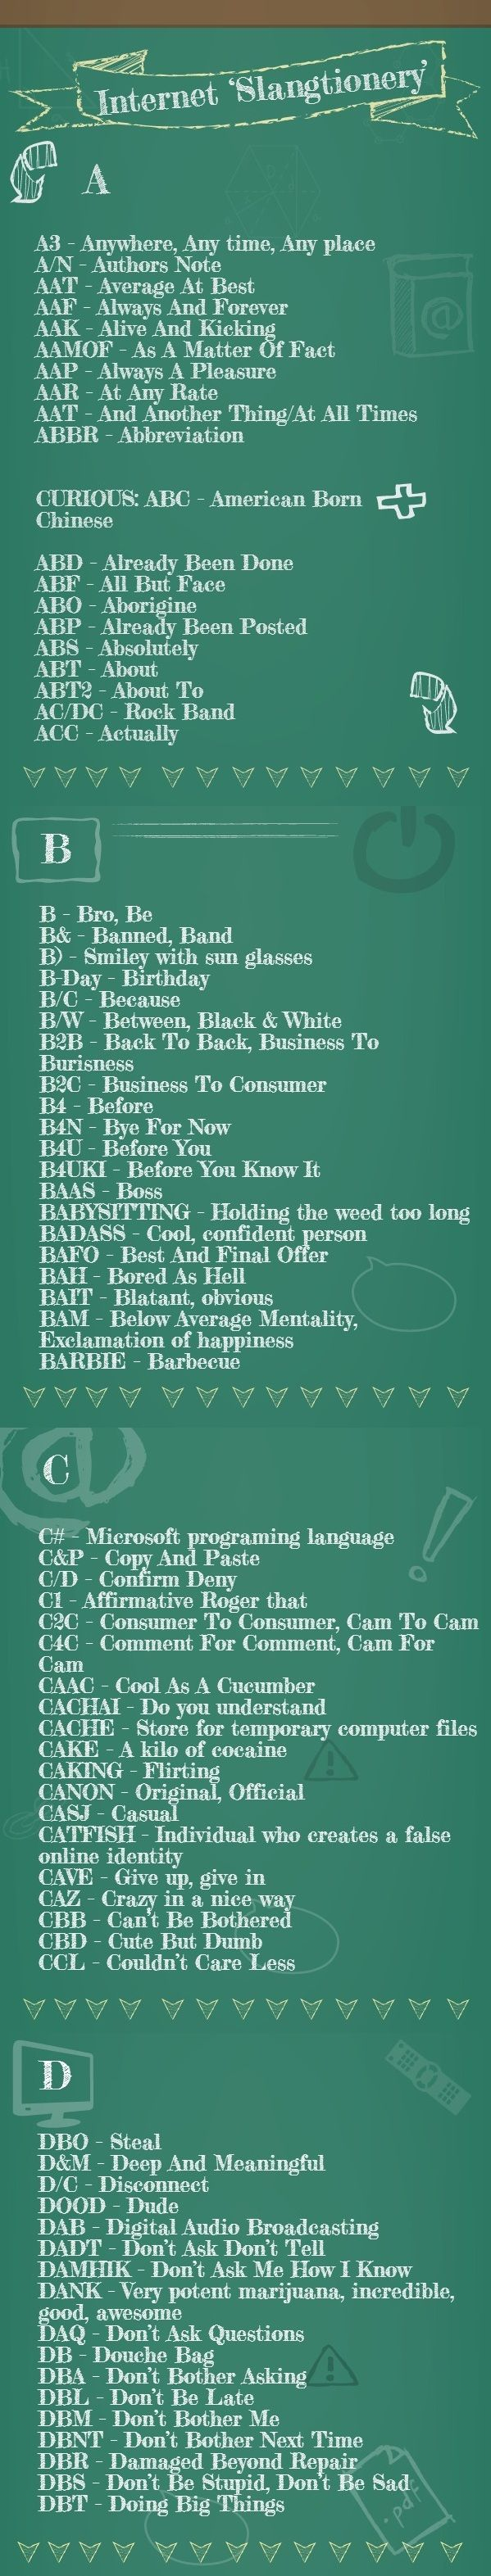 The slangtionery the internet slang dictionary for acronyms